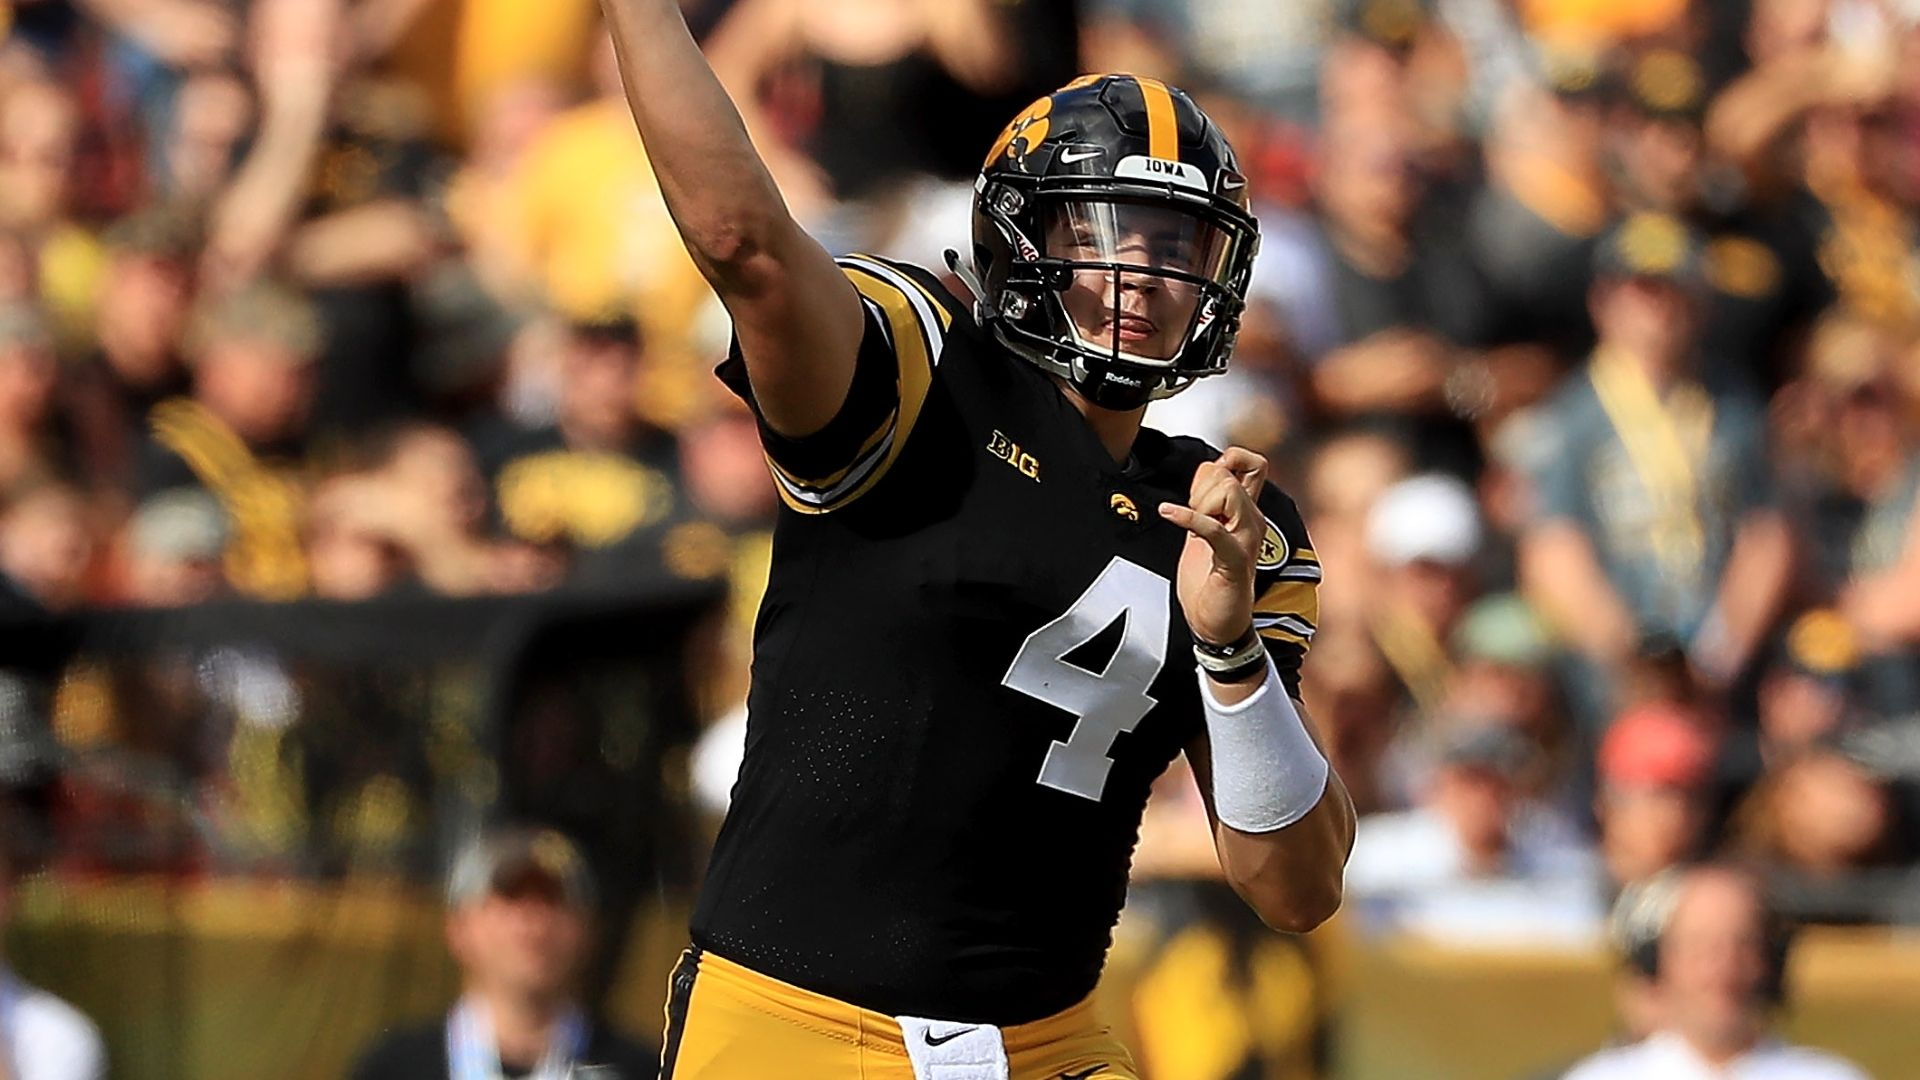 Stanley leads Iowa to Outback Bowl win over Miss St.